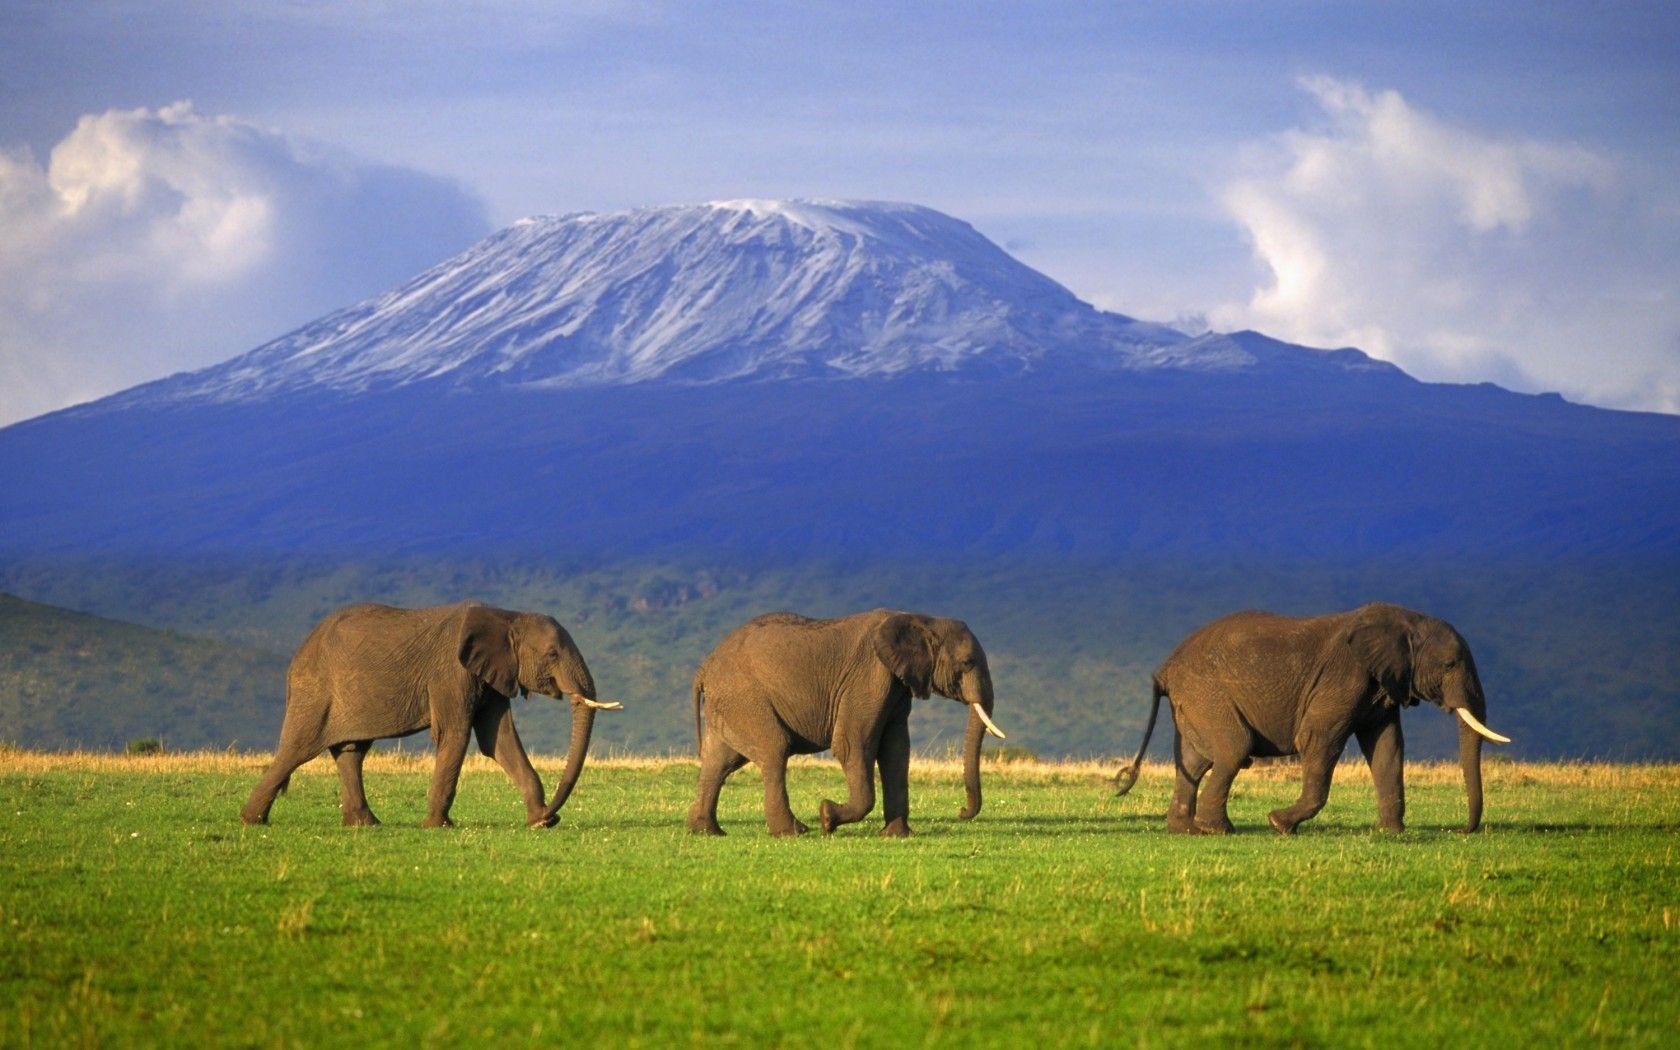 MOUNT KILIMANJARO: my daughter's goal is to climb this some day